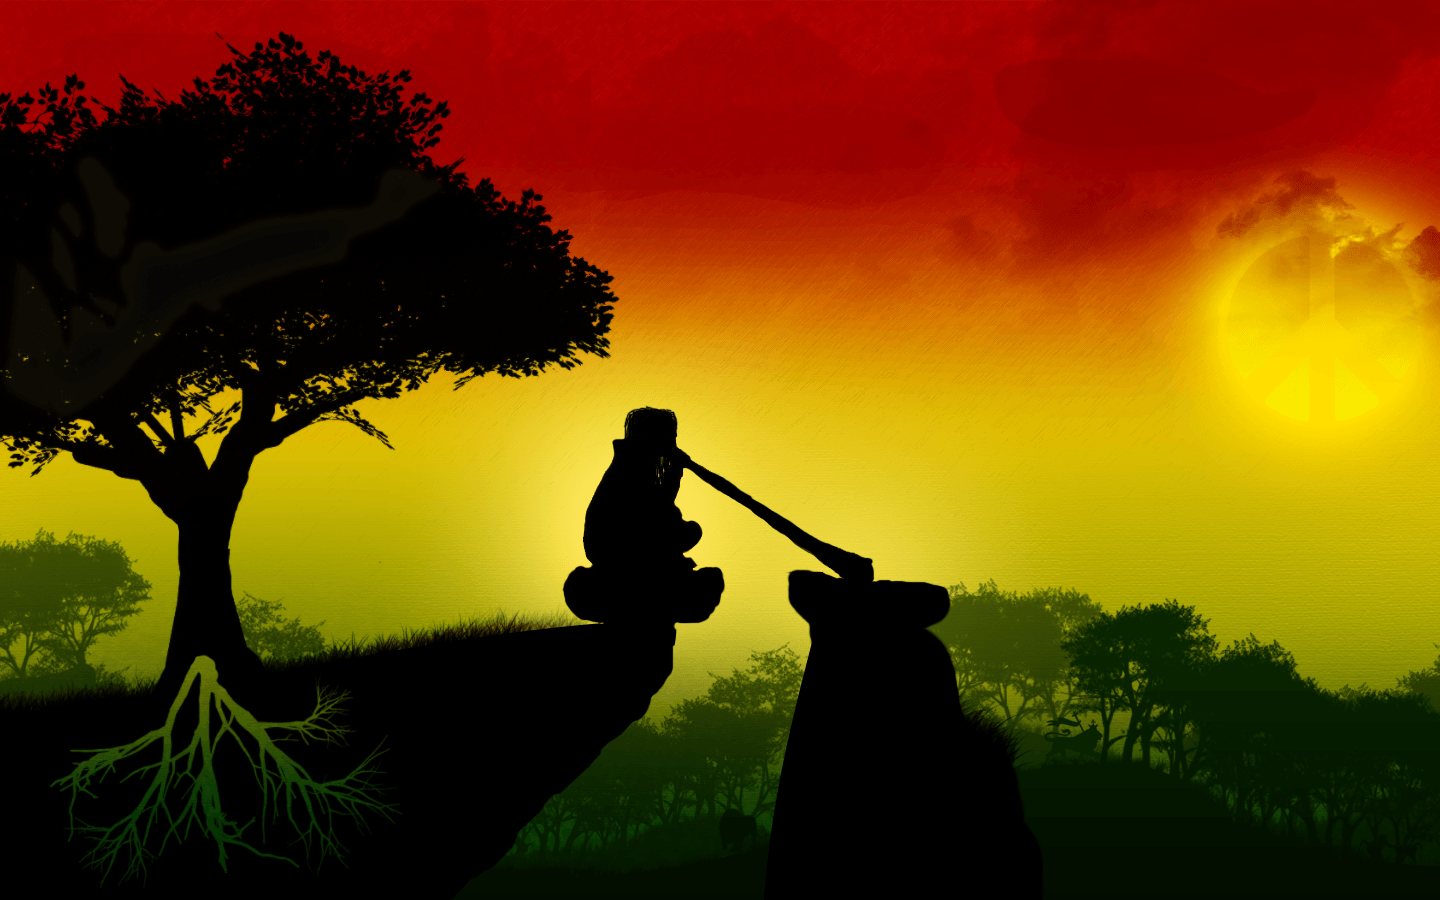 HD Rasta Wallpapers 2016